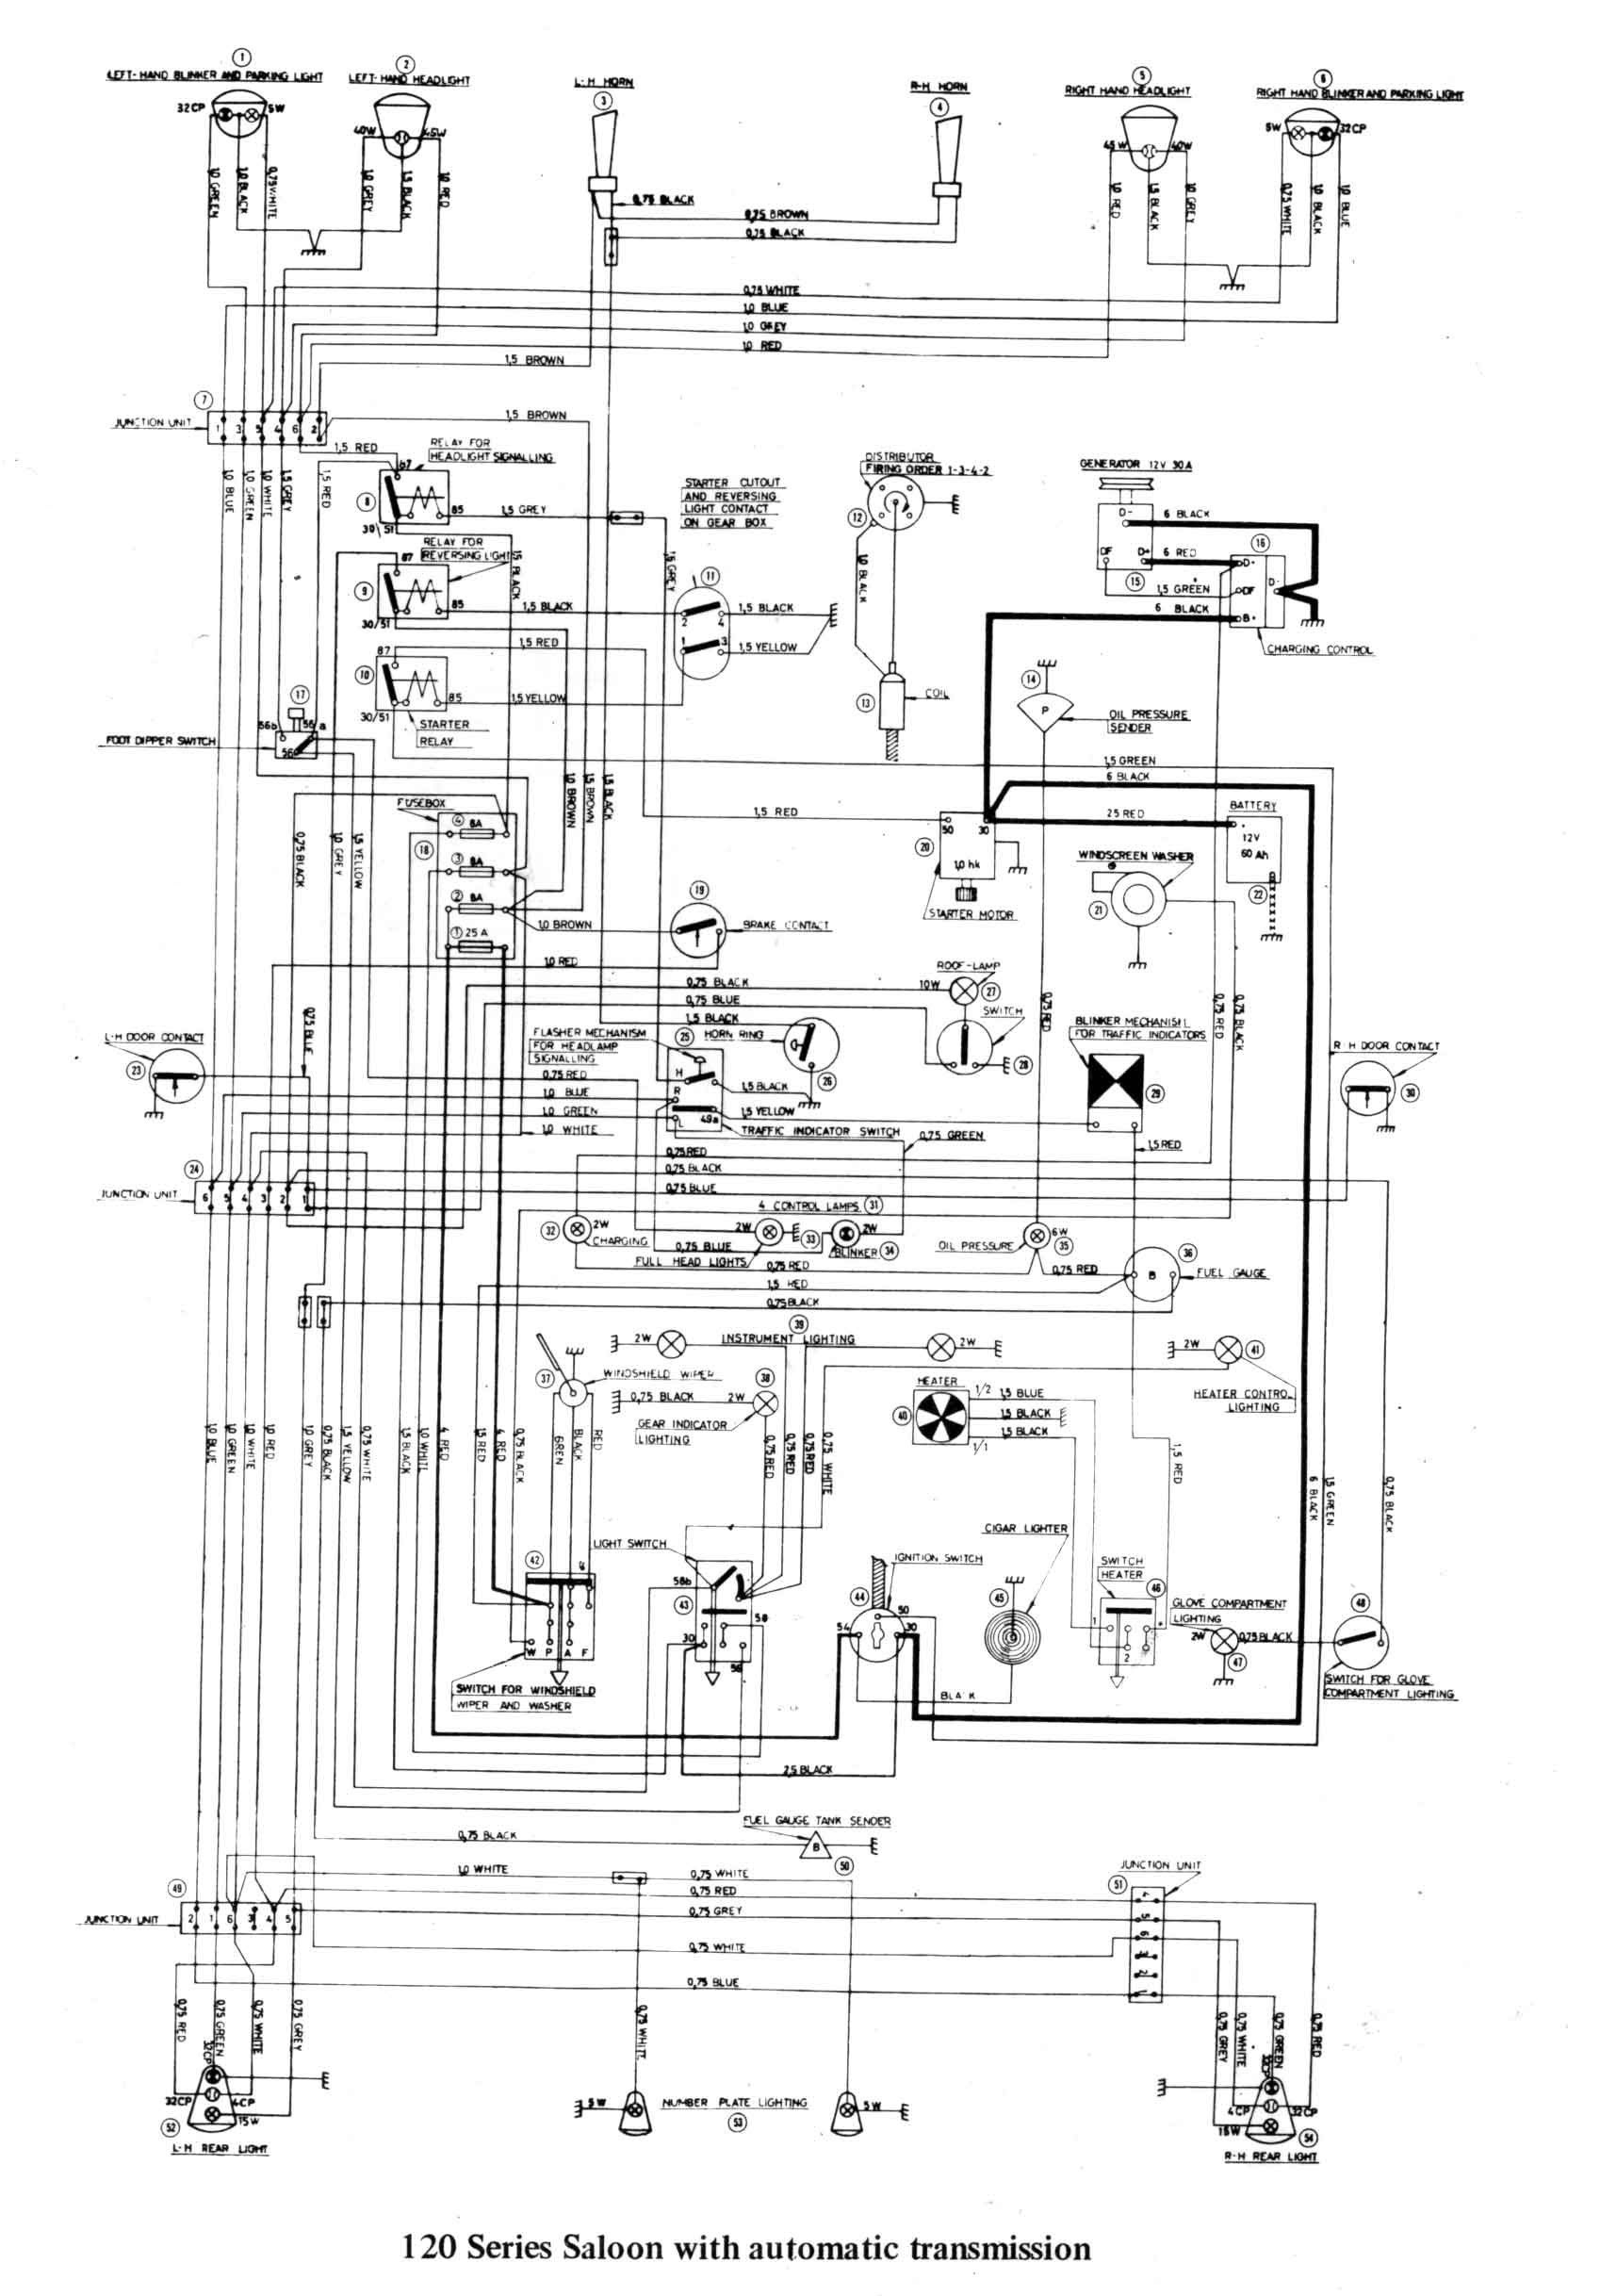 D12 Wiring Diagram 2000 Oldsmobile Silhouette Fuse Box Location Cts Lsa Los Dodol Jeanjaures37 Fr